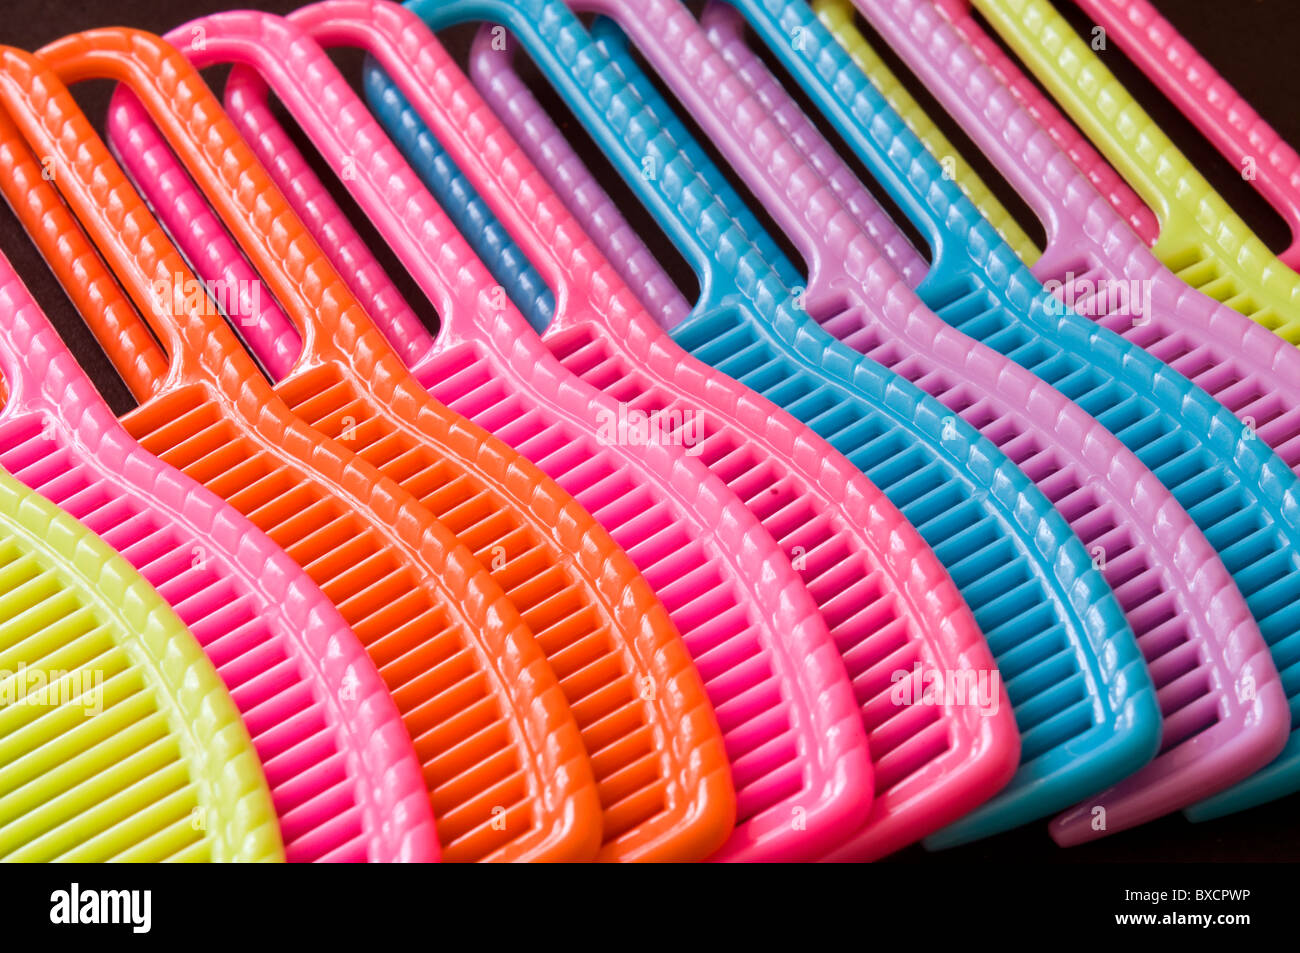 plastic combs - Stock Image